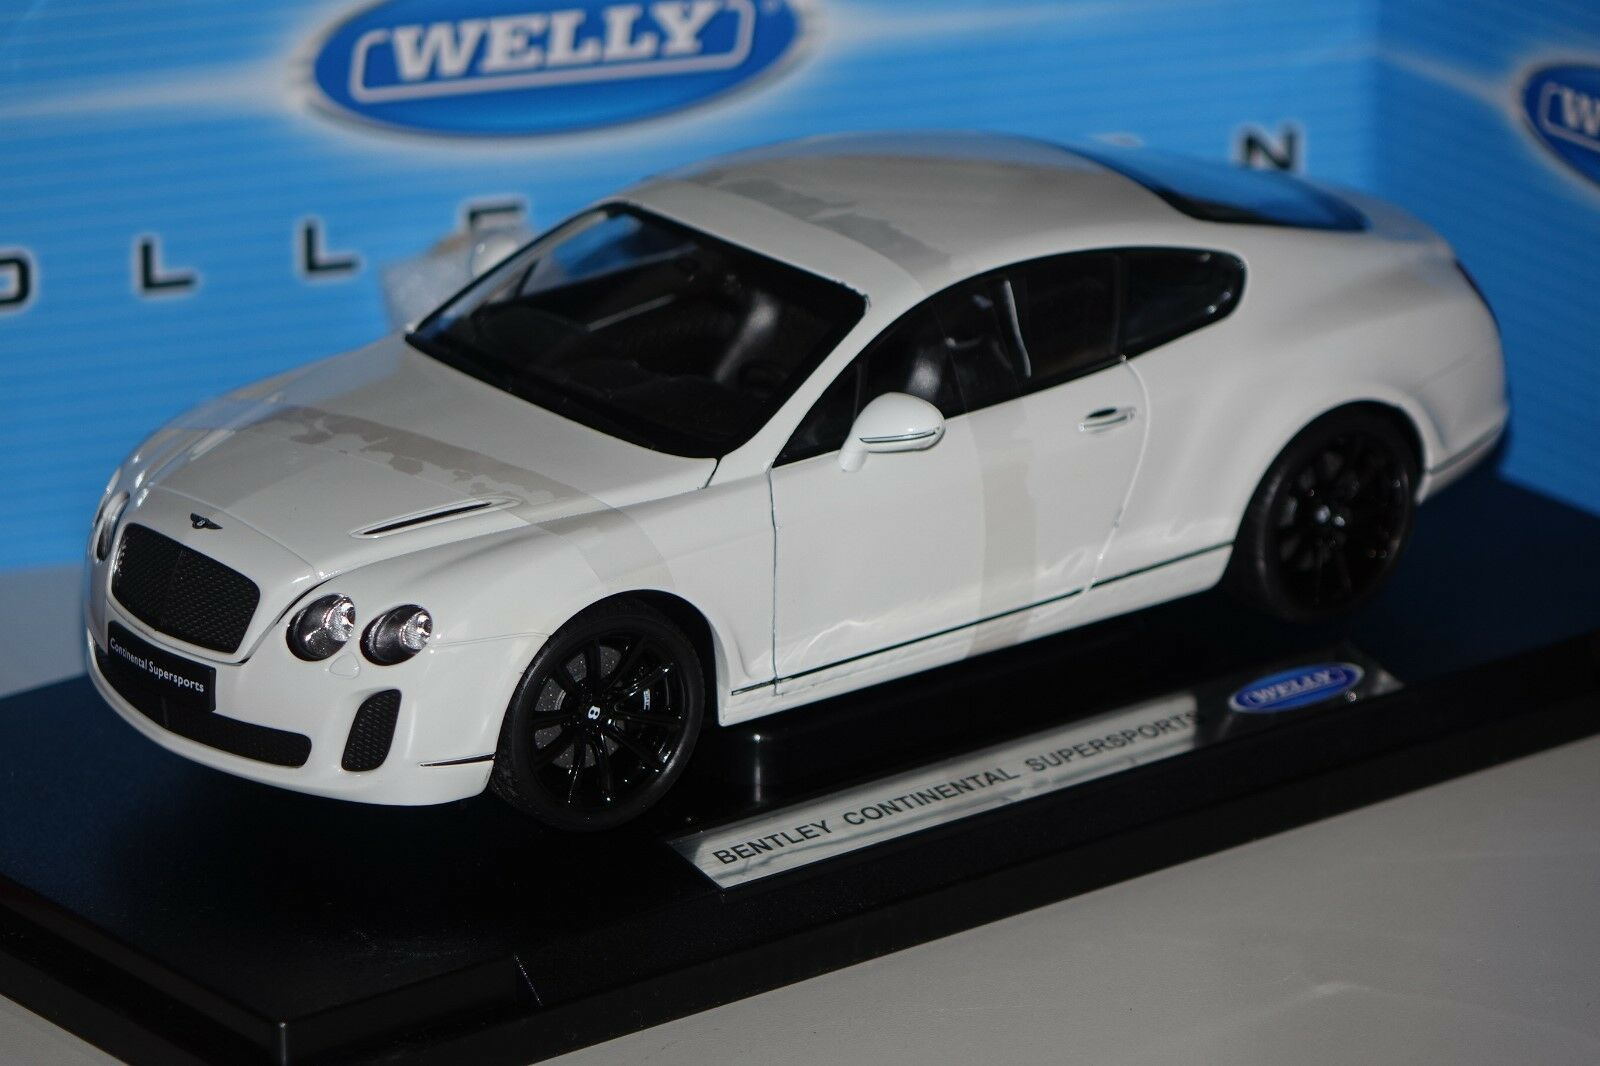 Bentley Continental Super puertos blancoo 1 18 Welly Welly Welly 18038 nuevo & OVP 26255b